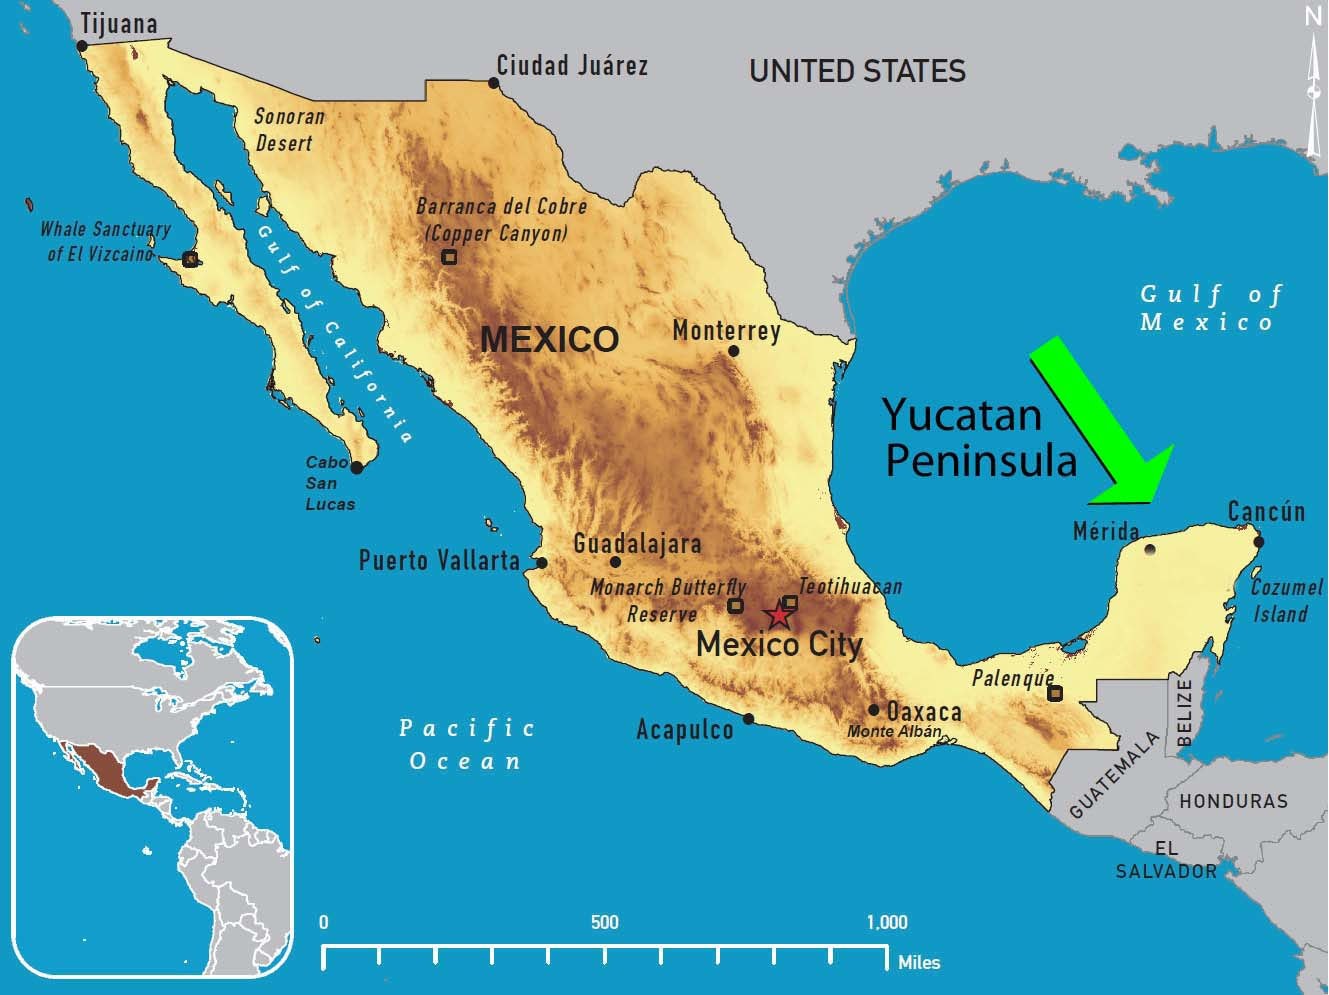 map4-10-mexico-large_edited-1 copy.jpg